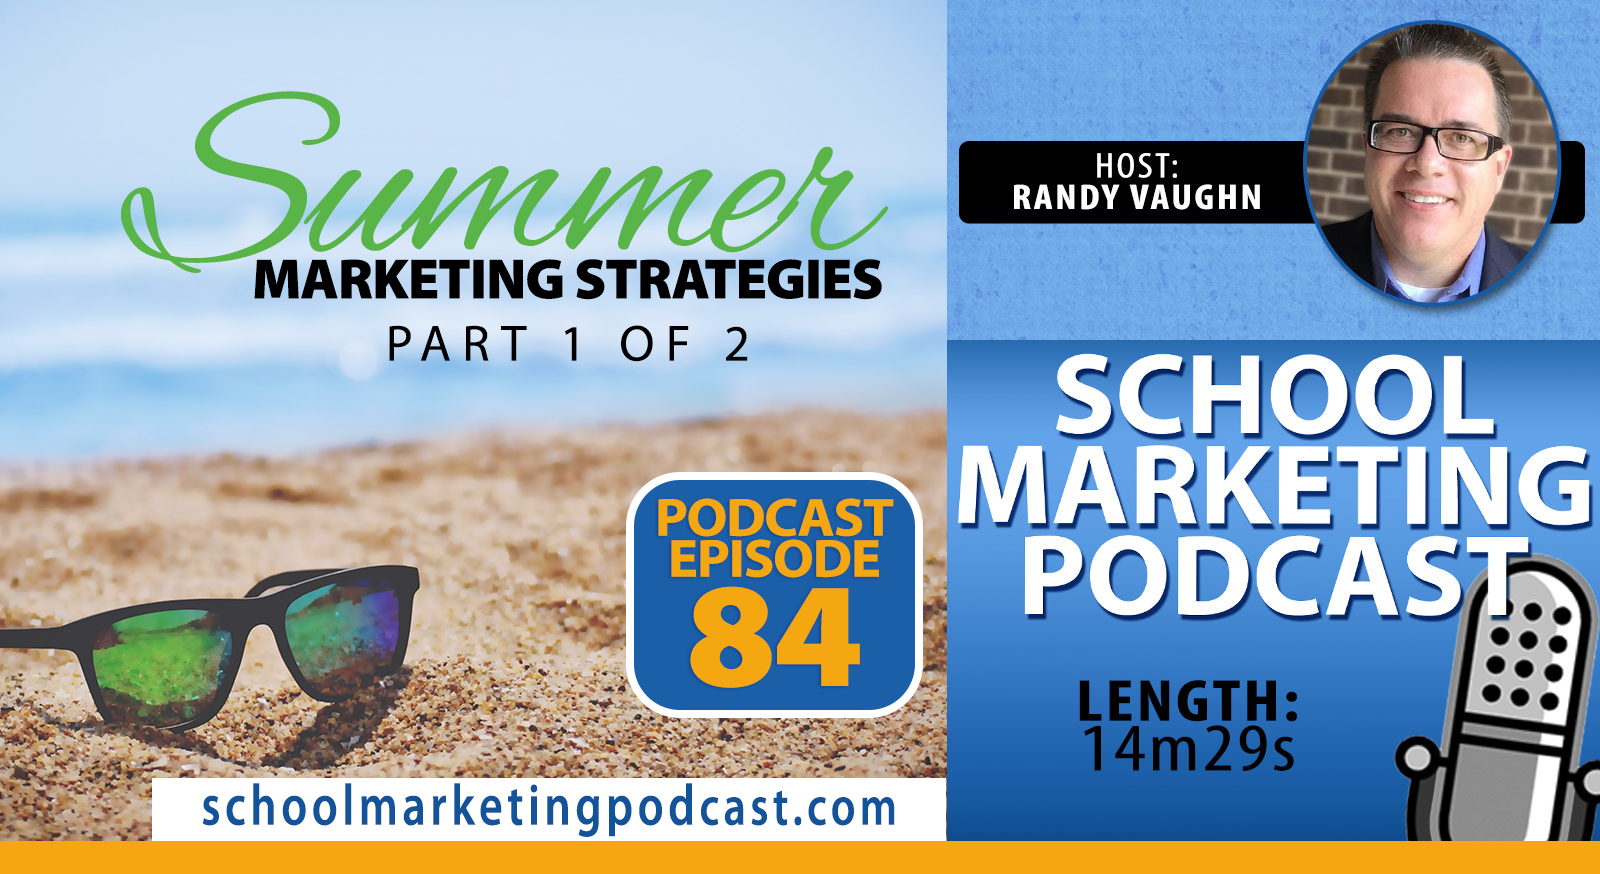 Summer Marketing Strategies for Schools - Part 1 of 2 (School Marketing Podcast #84)